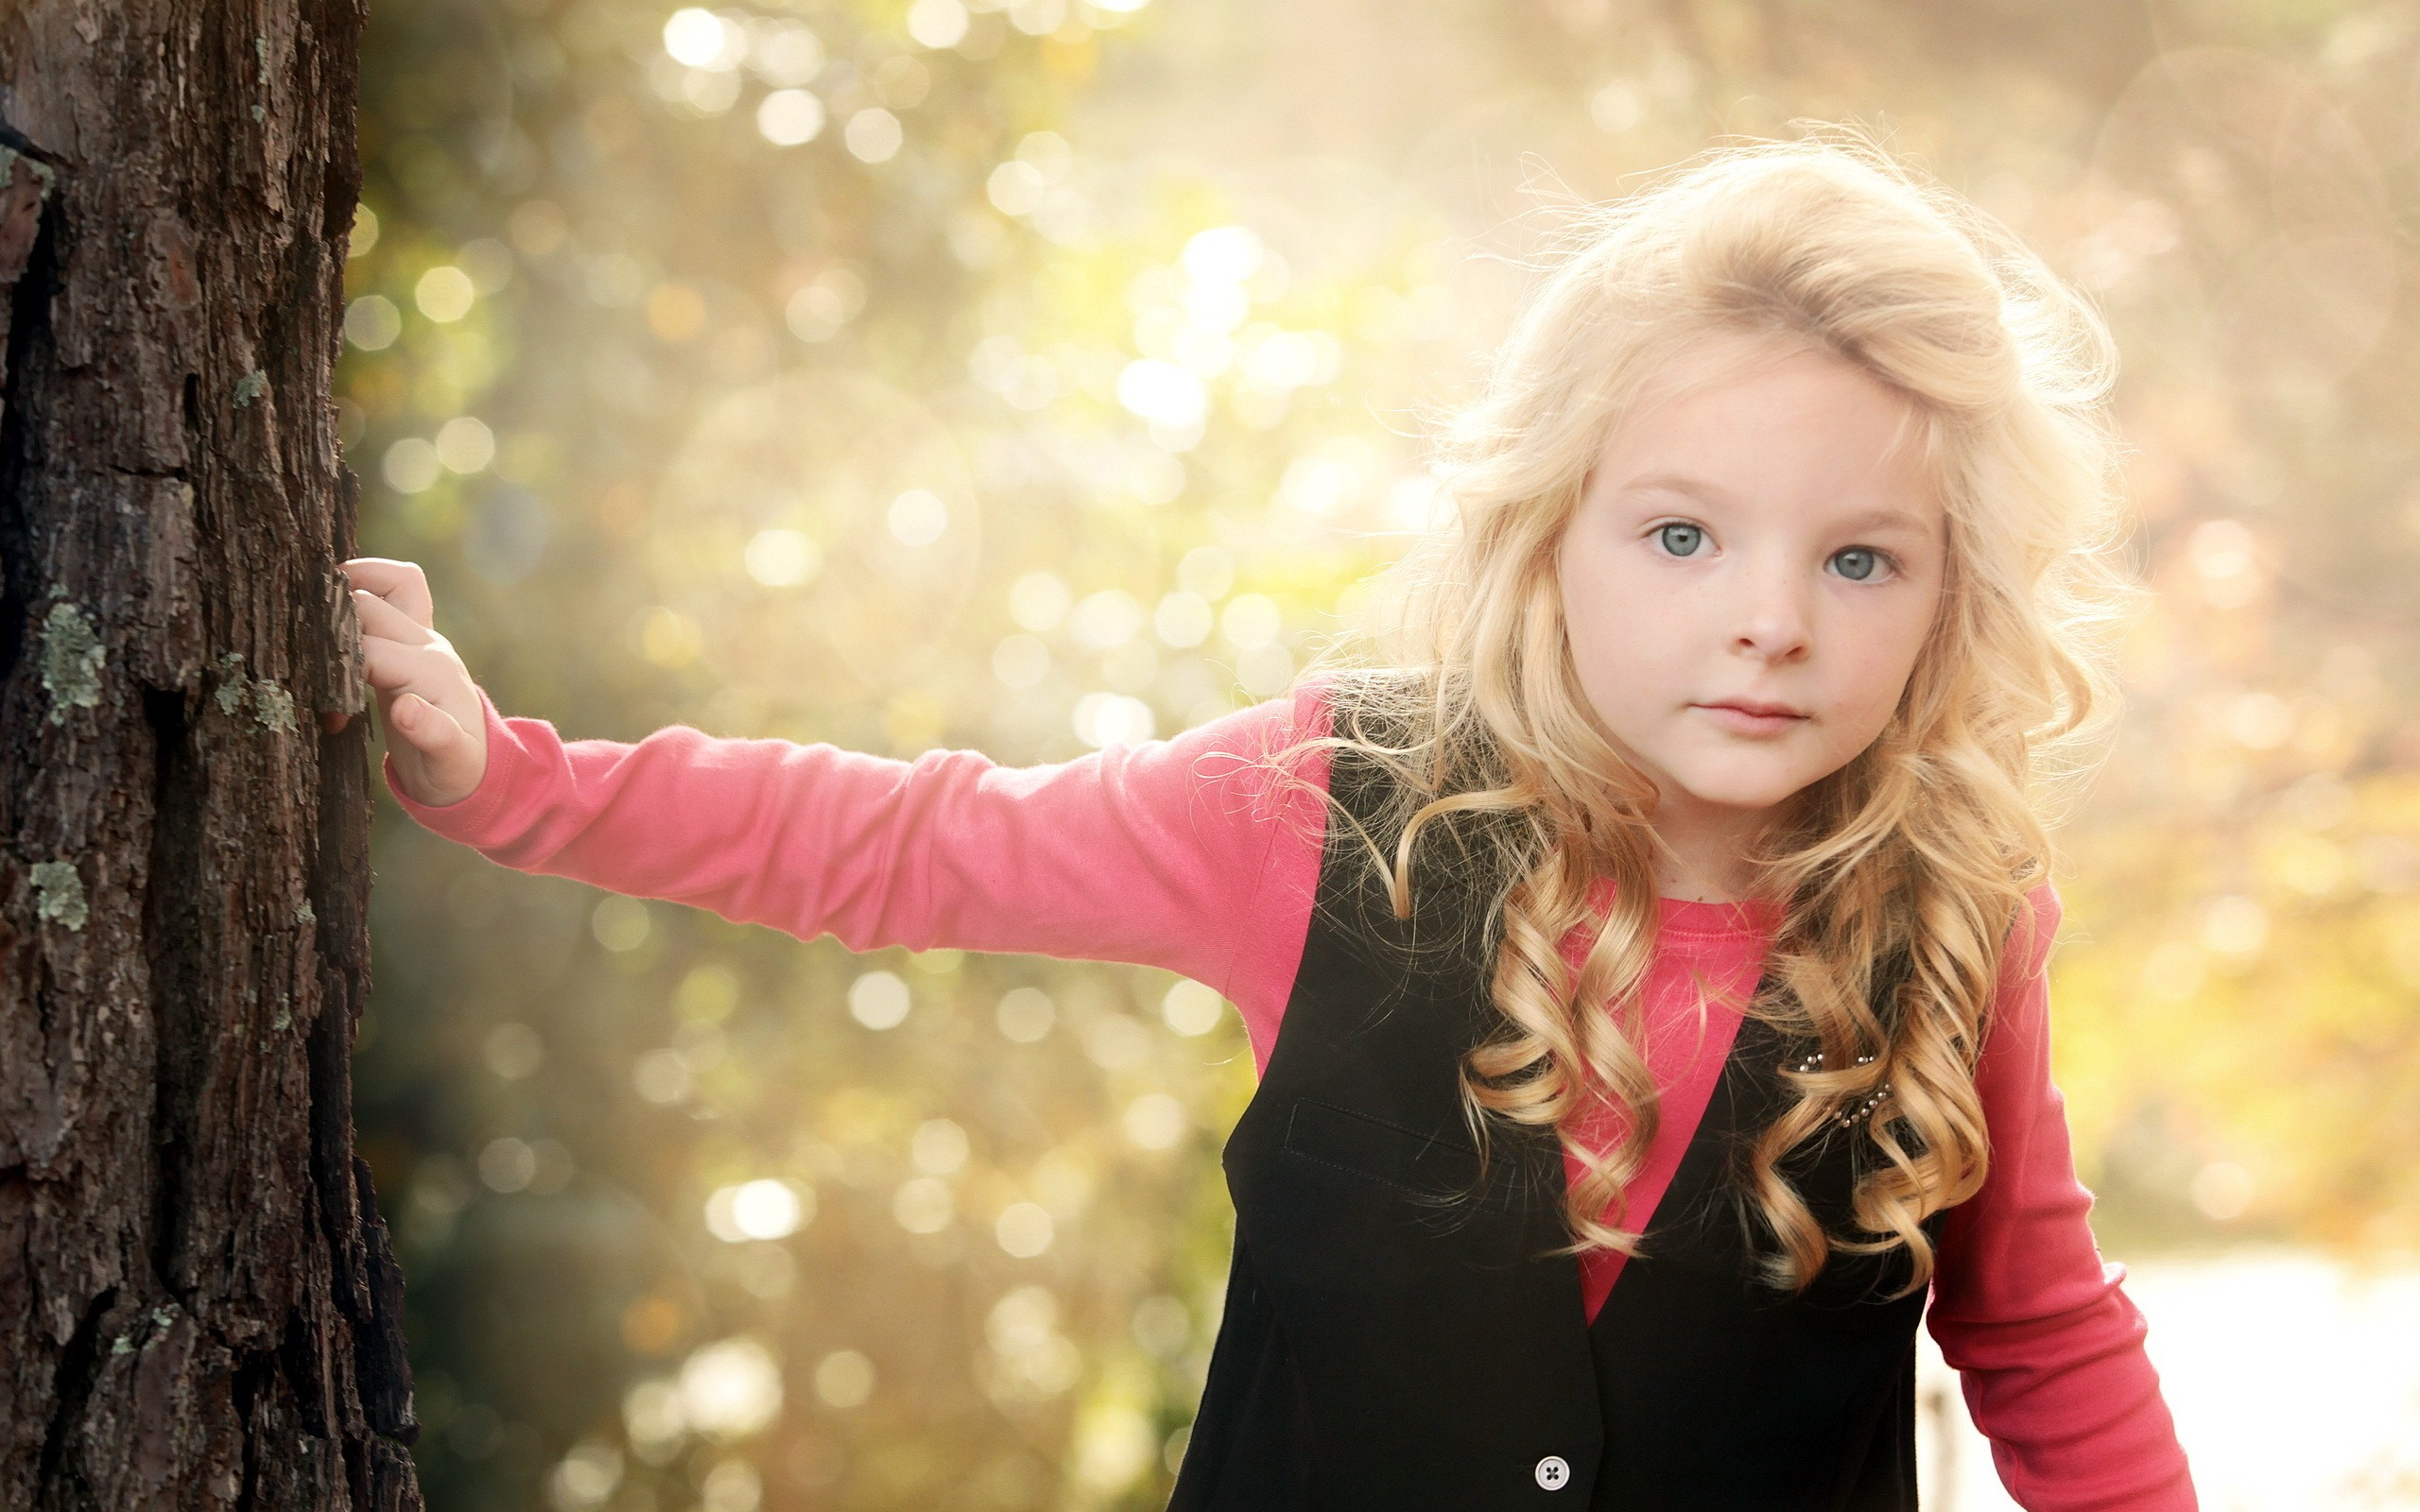 little-blonde-girl-photo-wallpaper-2560x1600